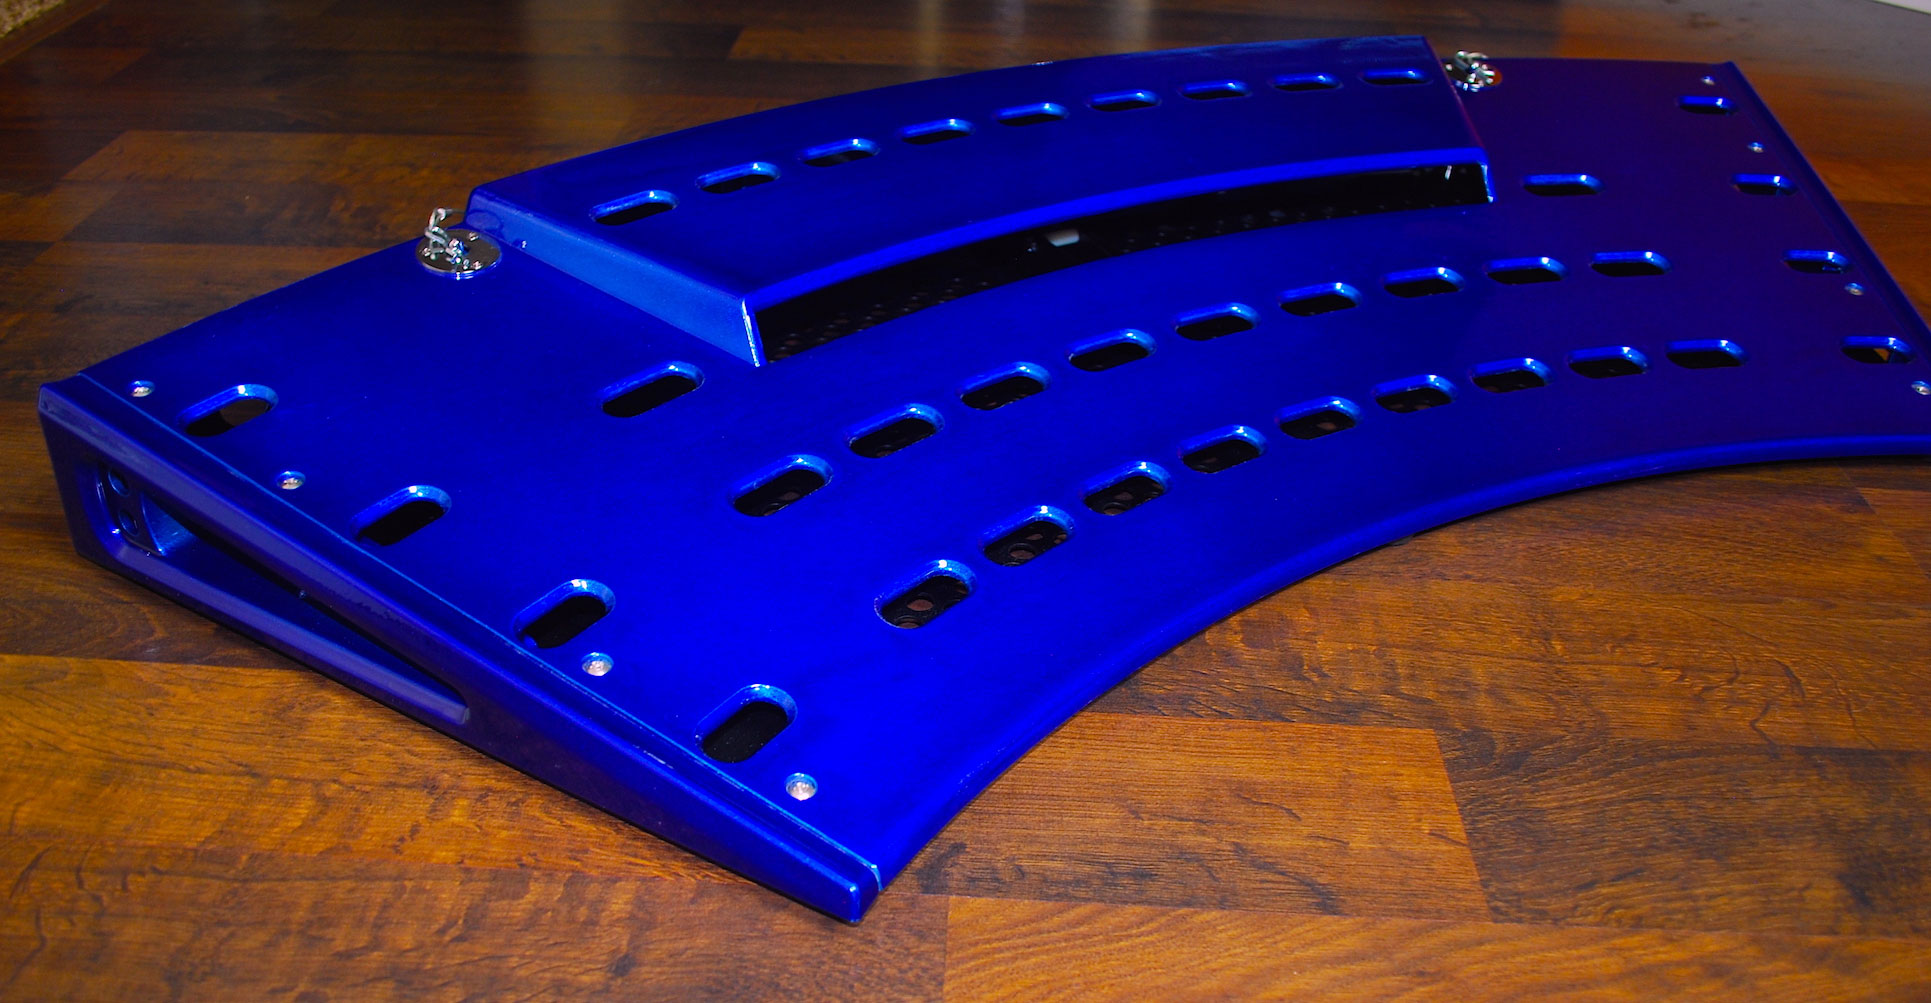 Fastback GT Pedalboard in Metallic Blue